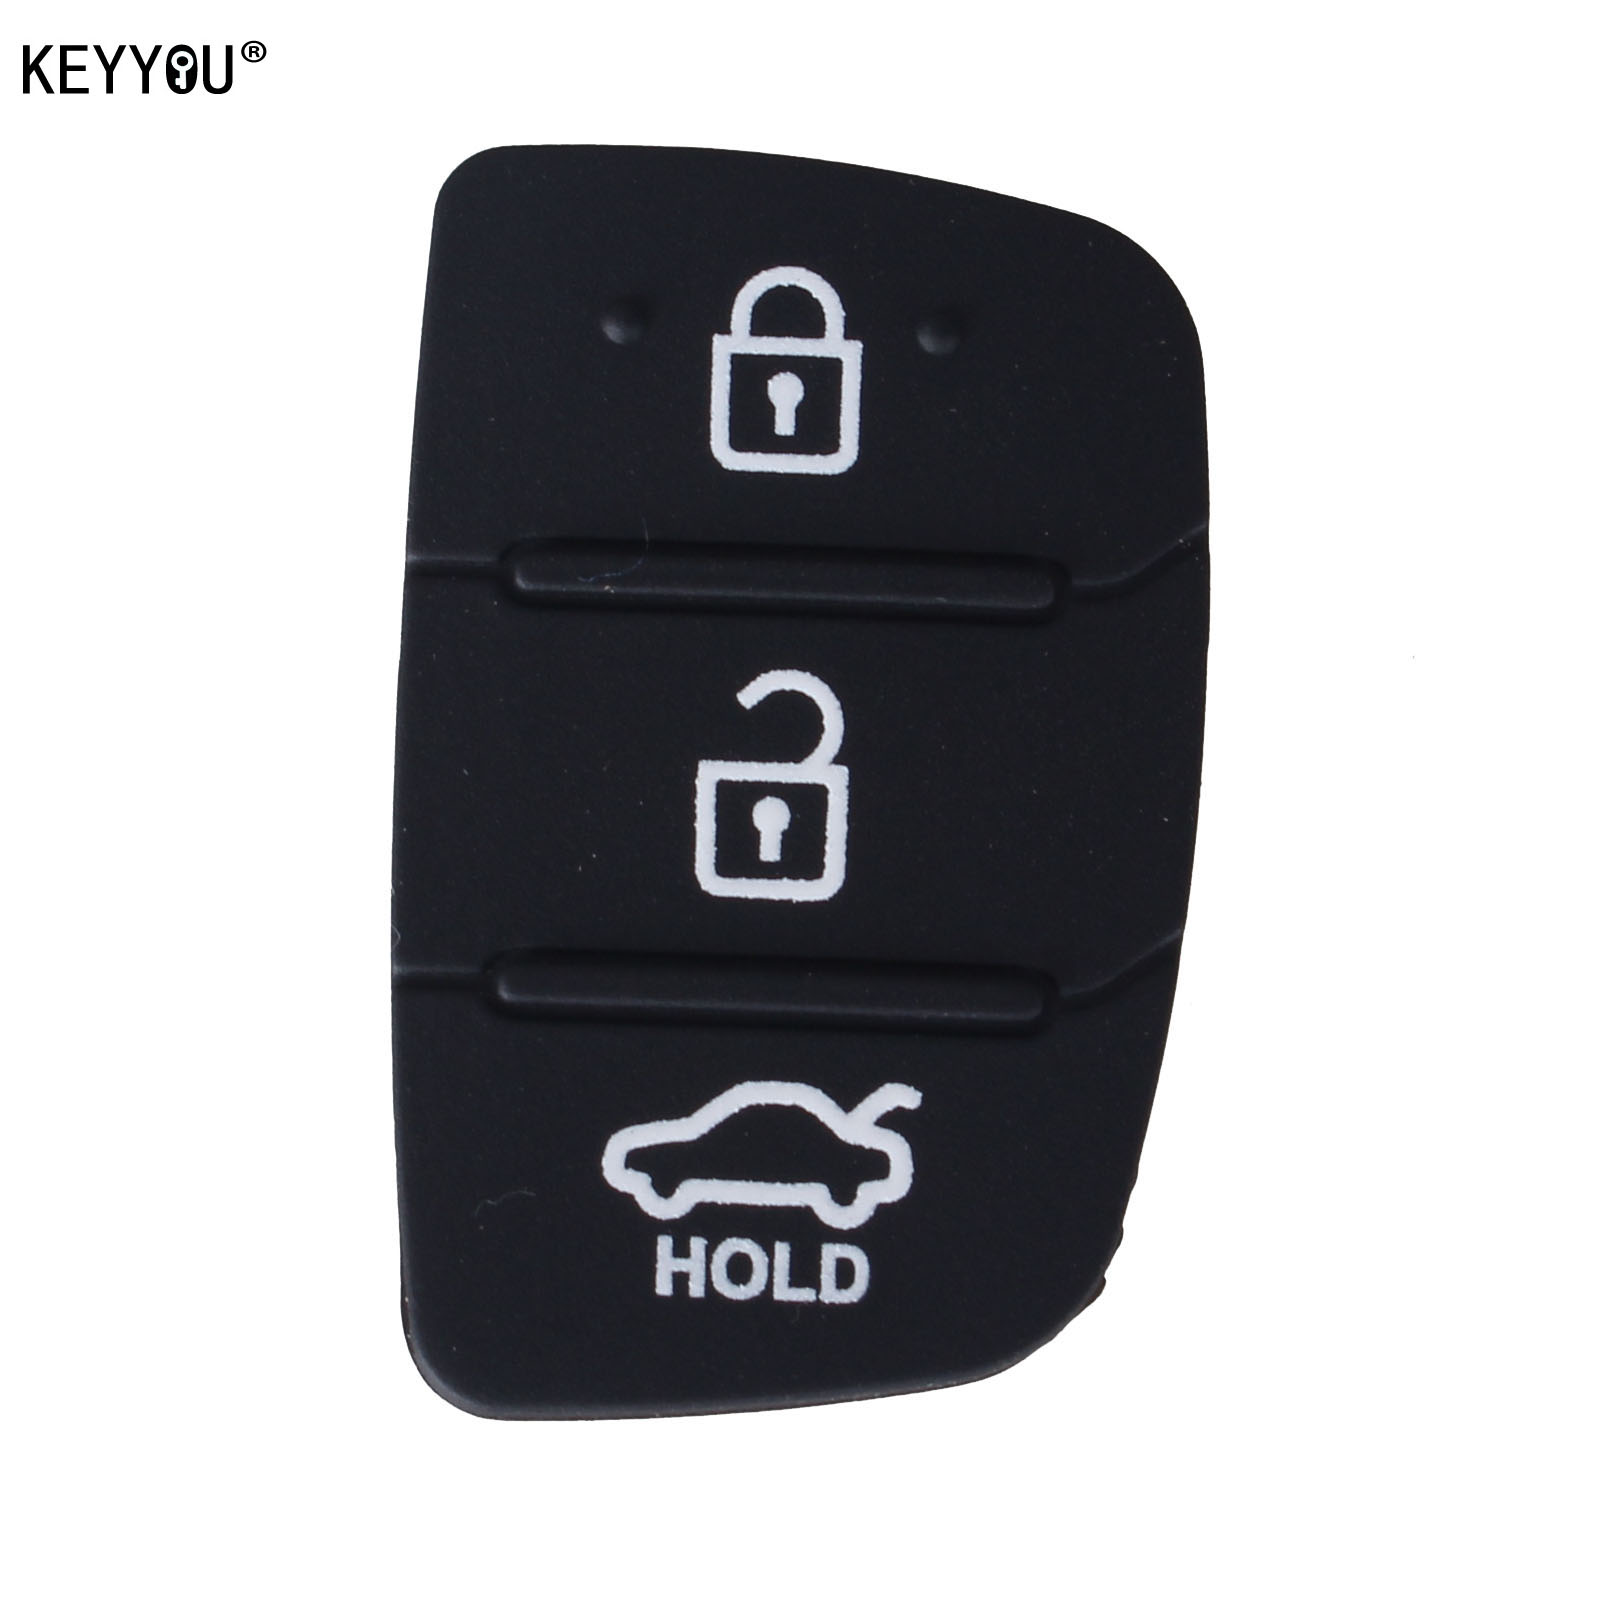 KEYYOU 50pcs/lot Auto Parts Replacement Rubber Case Car Key Pad For Hyundai 3 Buttons Key Shell Blank Cover-in Car Key from Automobiles & Motorcycles    1